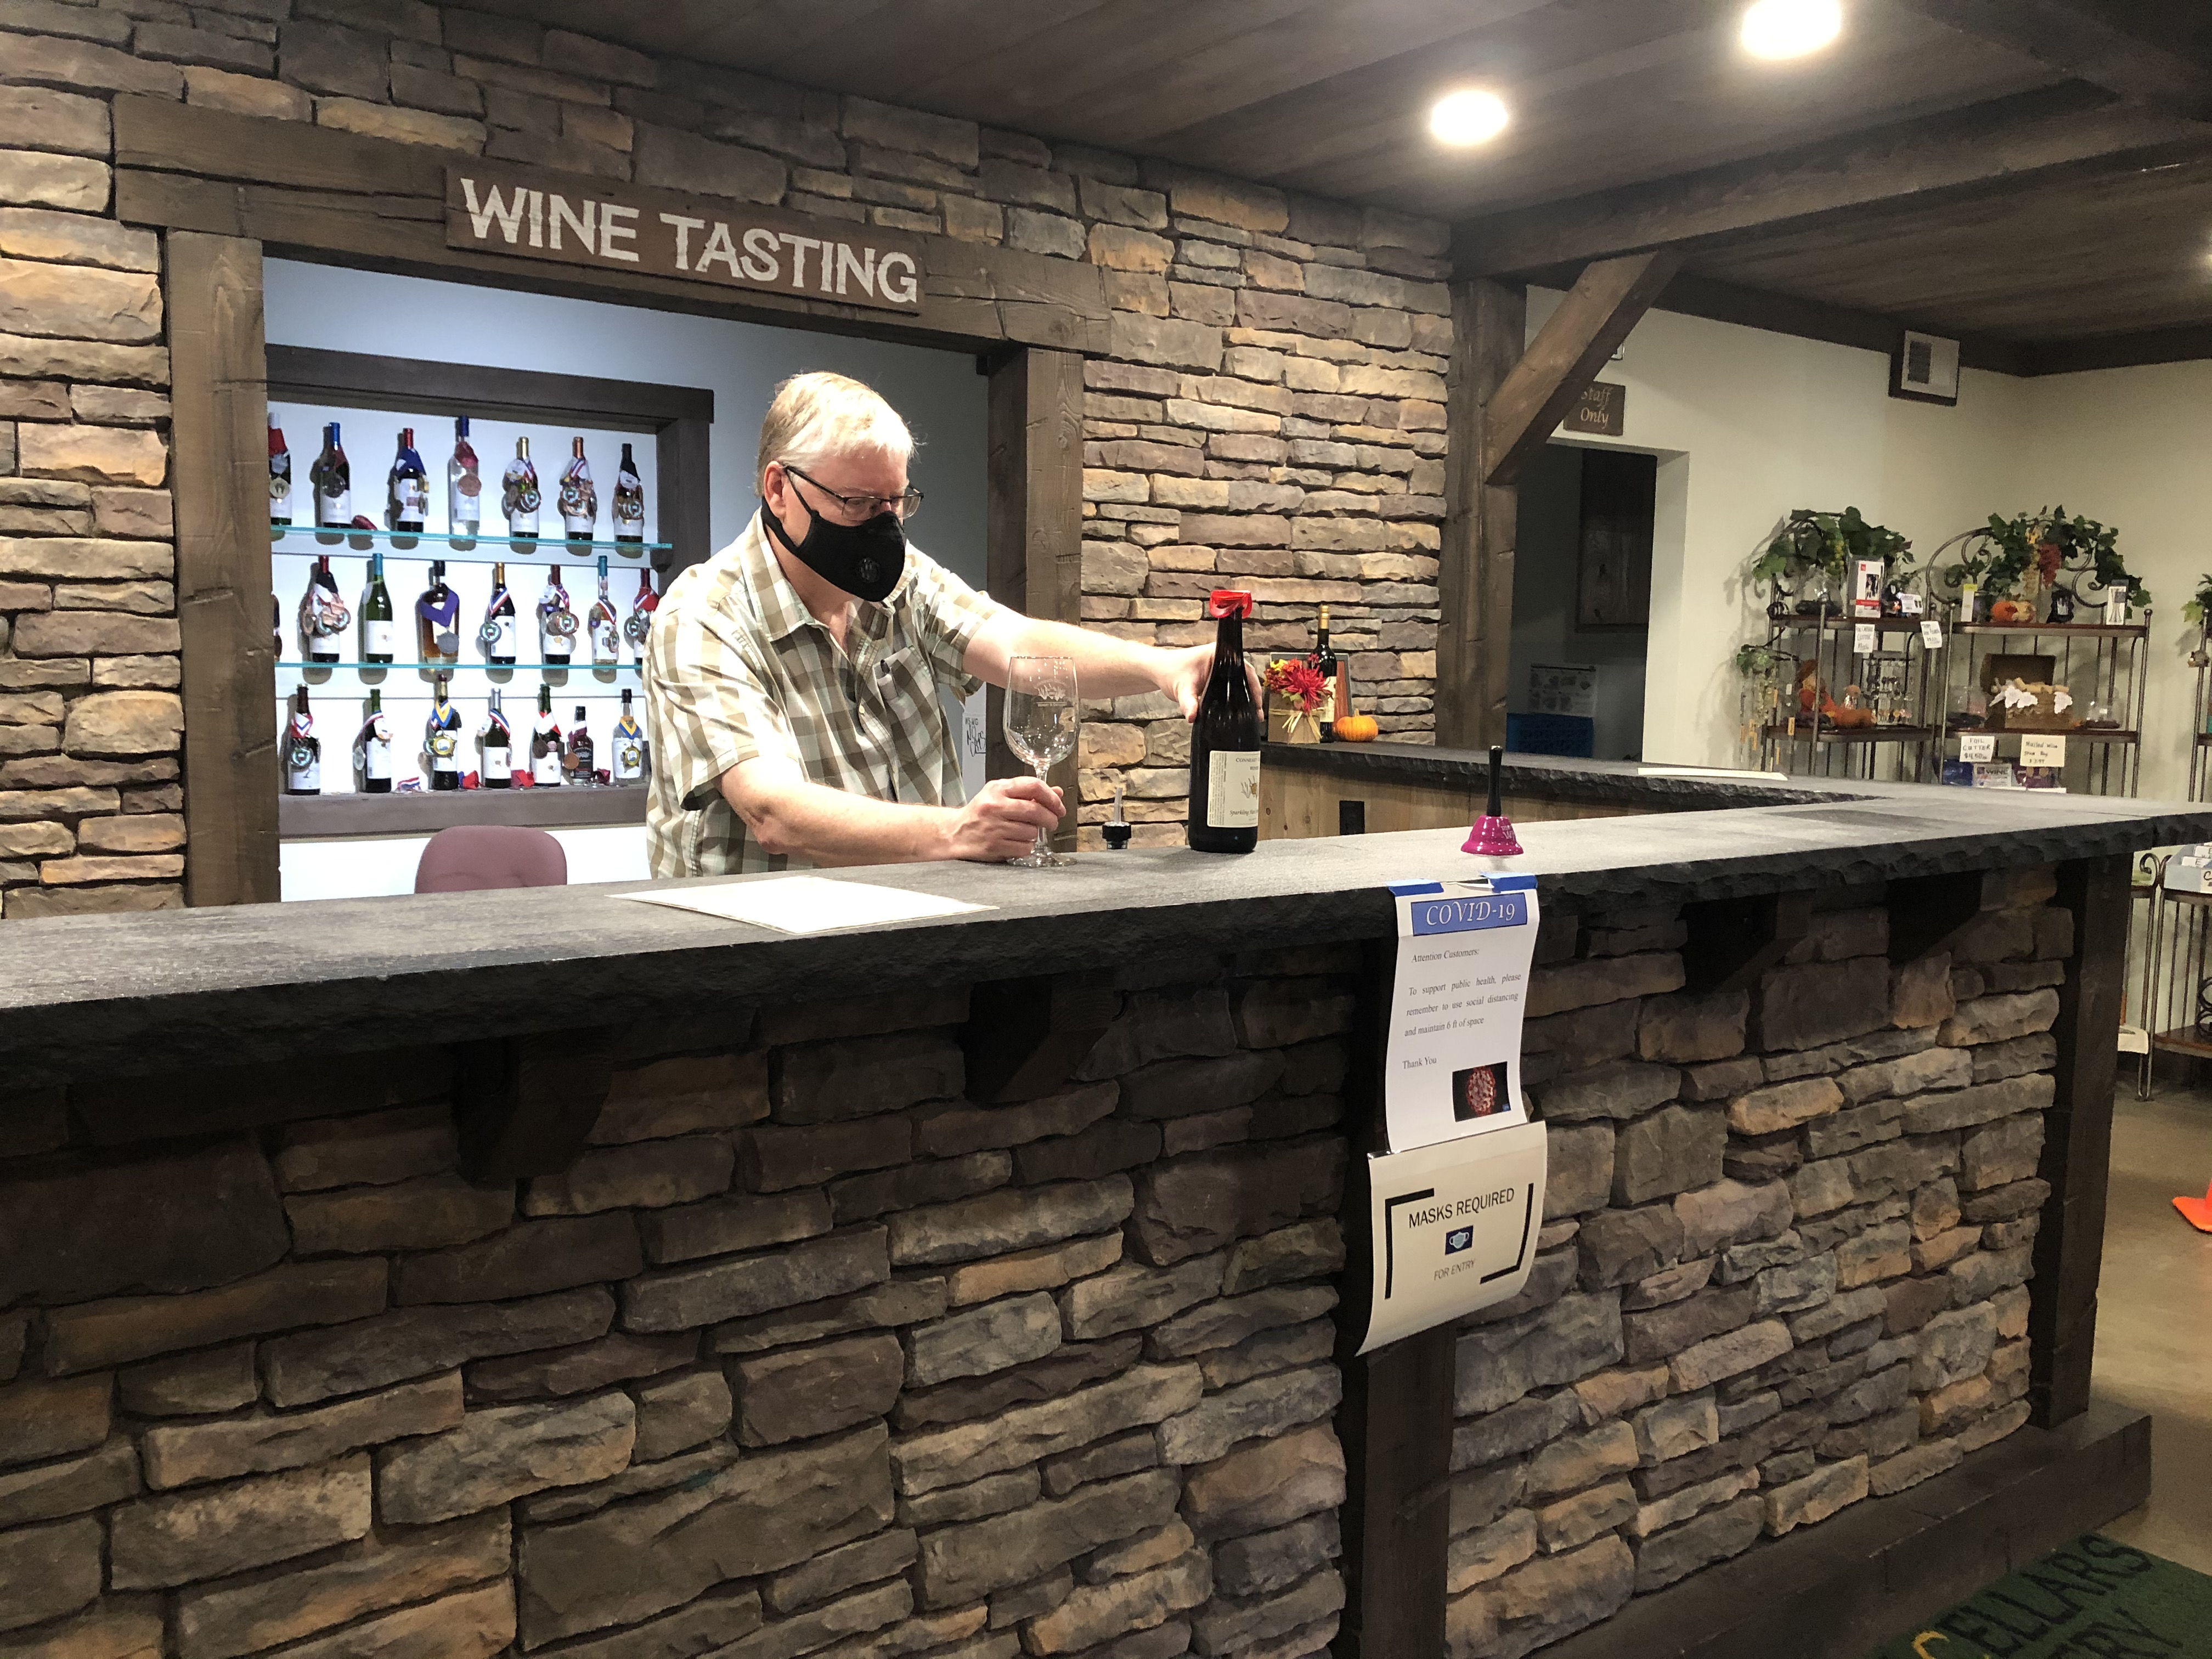 Joal Wolf, owner of Conneaut Cellars offering wine tasting at Conneaut Cellars Winery & Distillery.